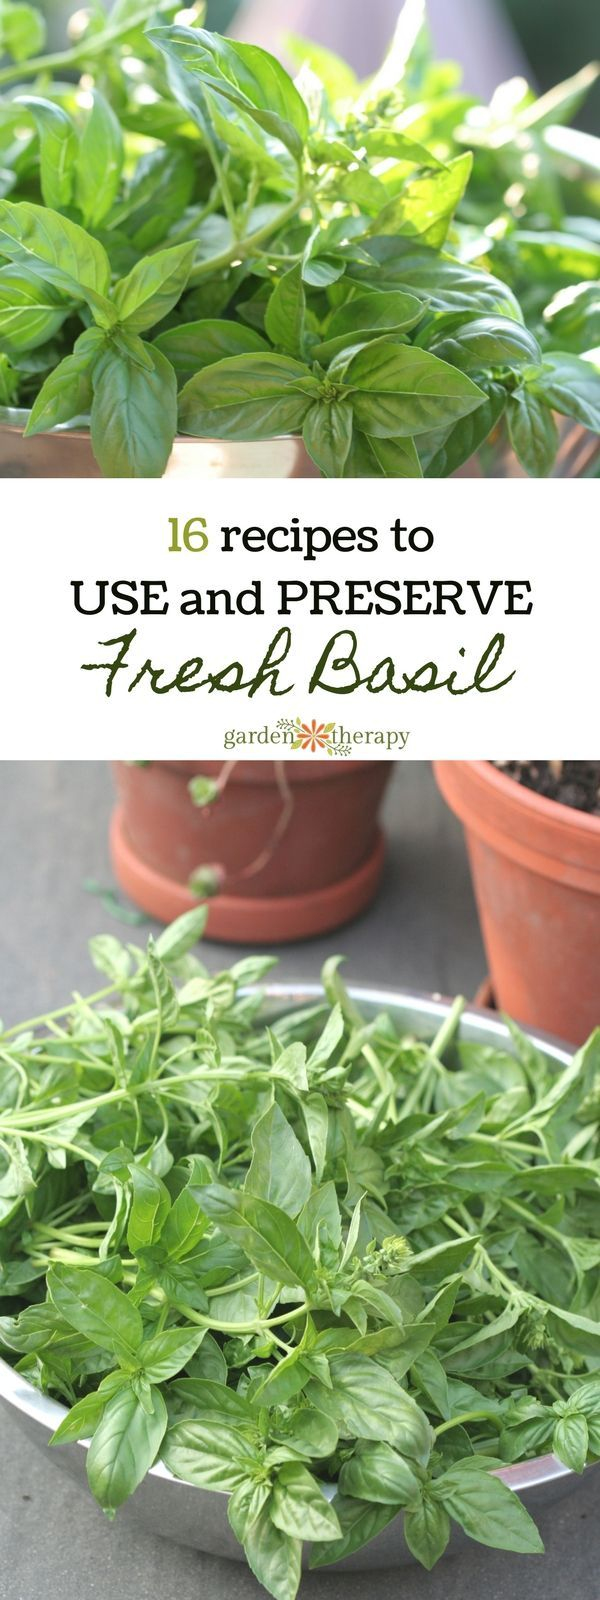 16 Recipes for Using or Preserving Basil